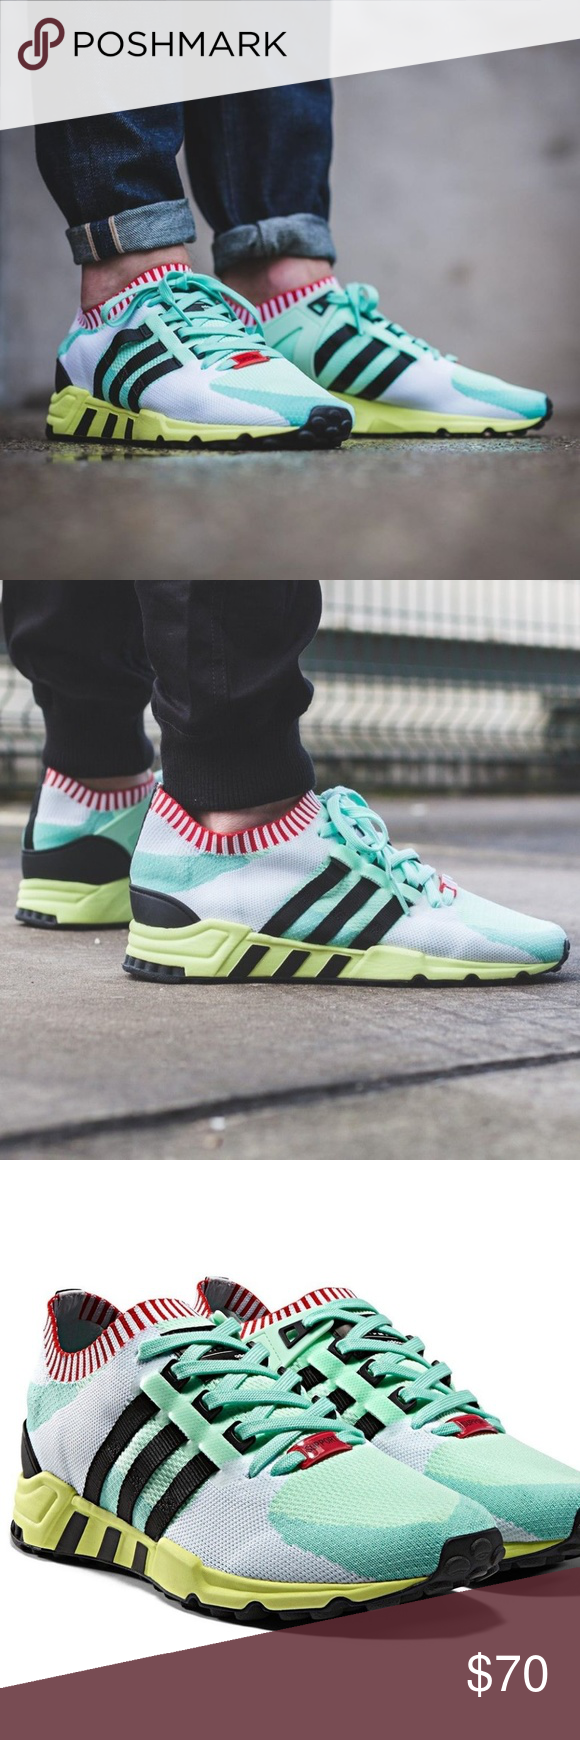 newest 5a767 50367 Adidas EQT Support RF PK Frozen Green Primeknit Brand new ...